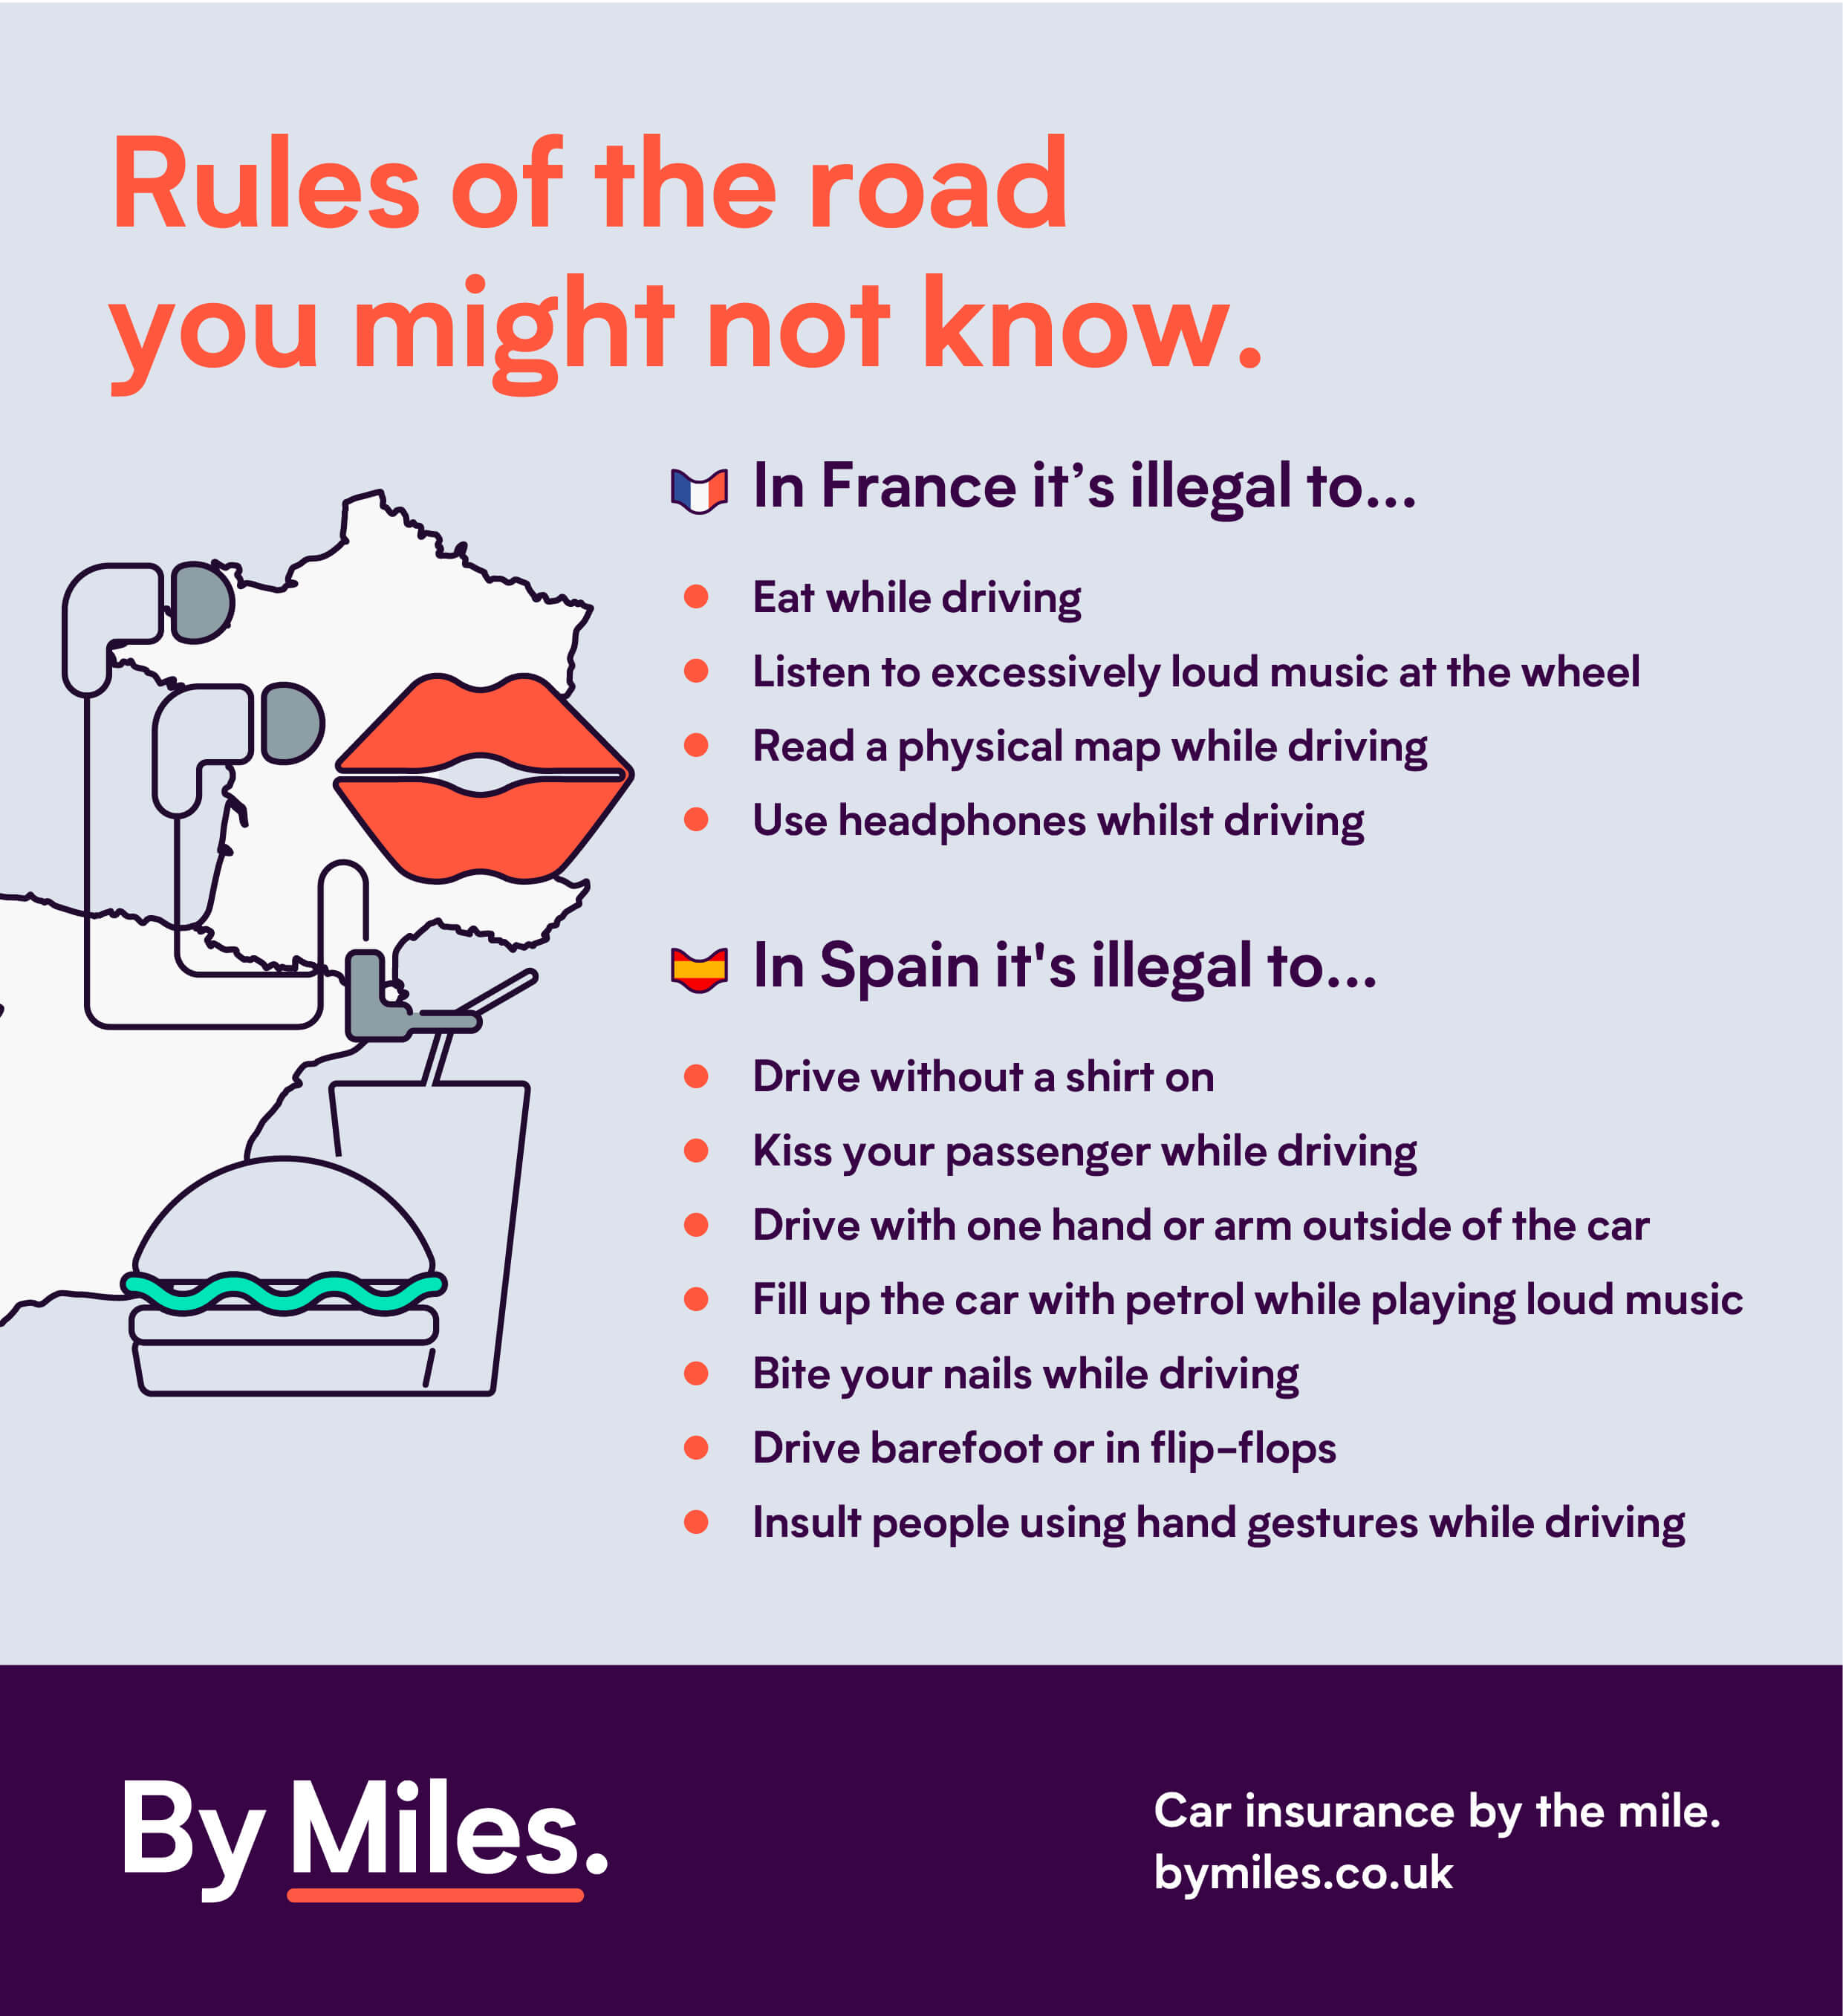 Rules Of The Road You Might Not Know - Driving Laws For A Road Trip To The Champions League Final